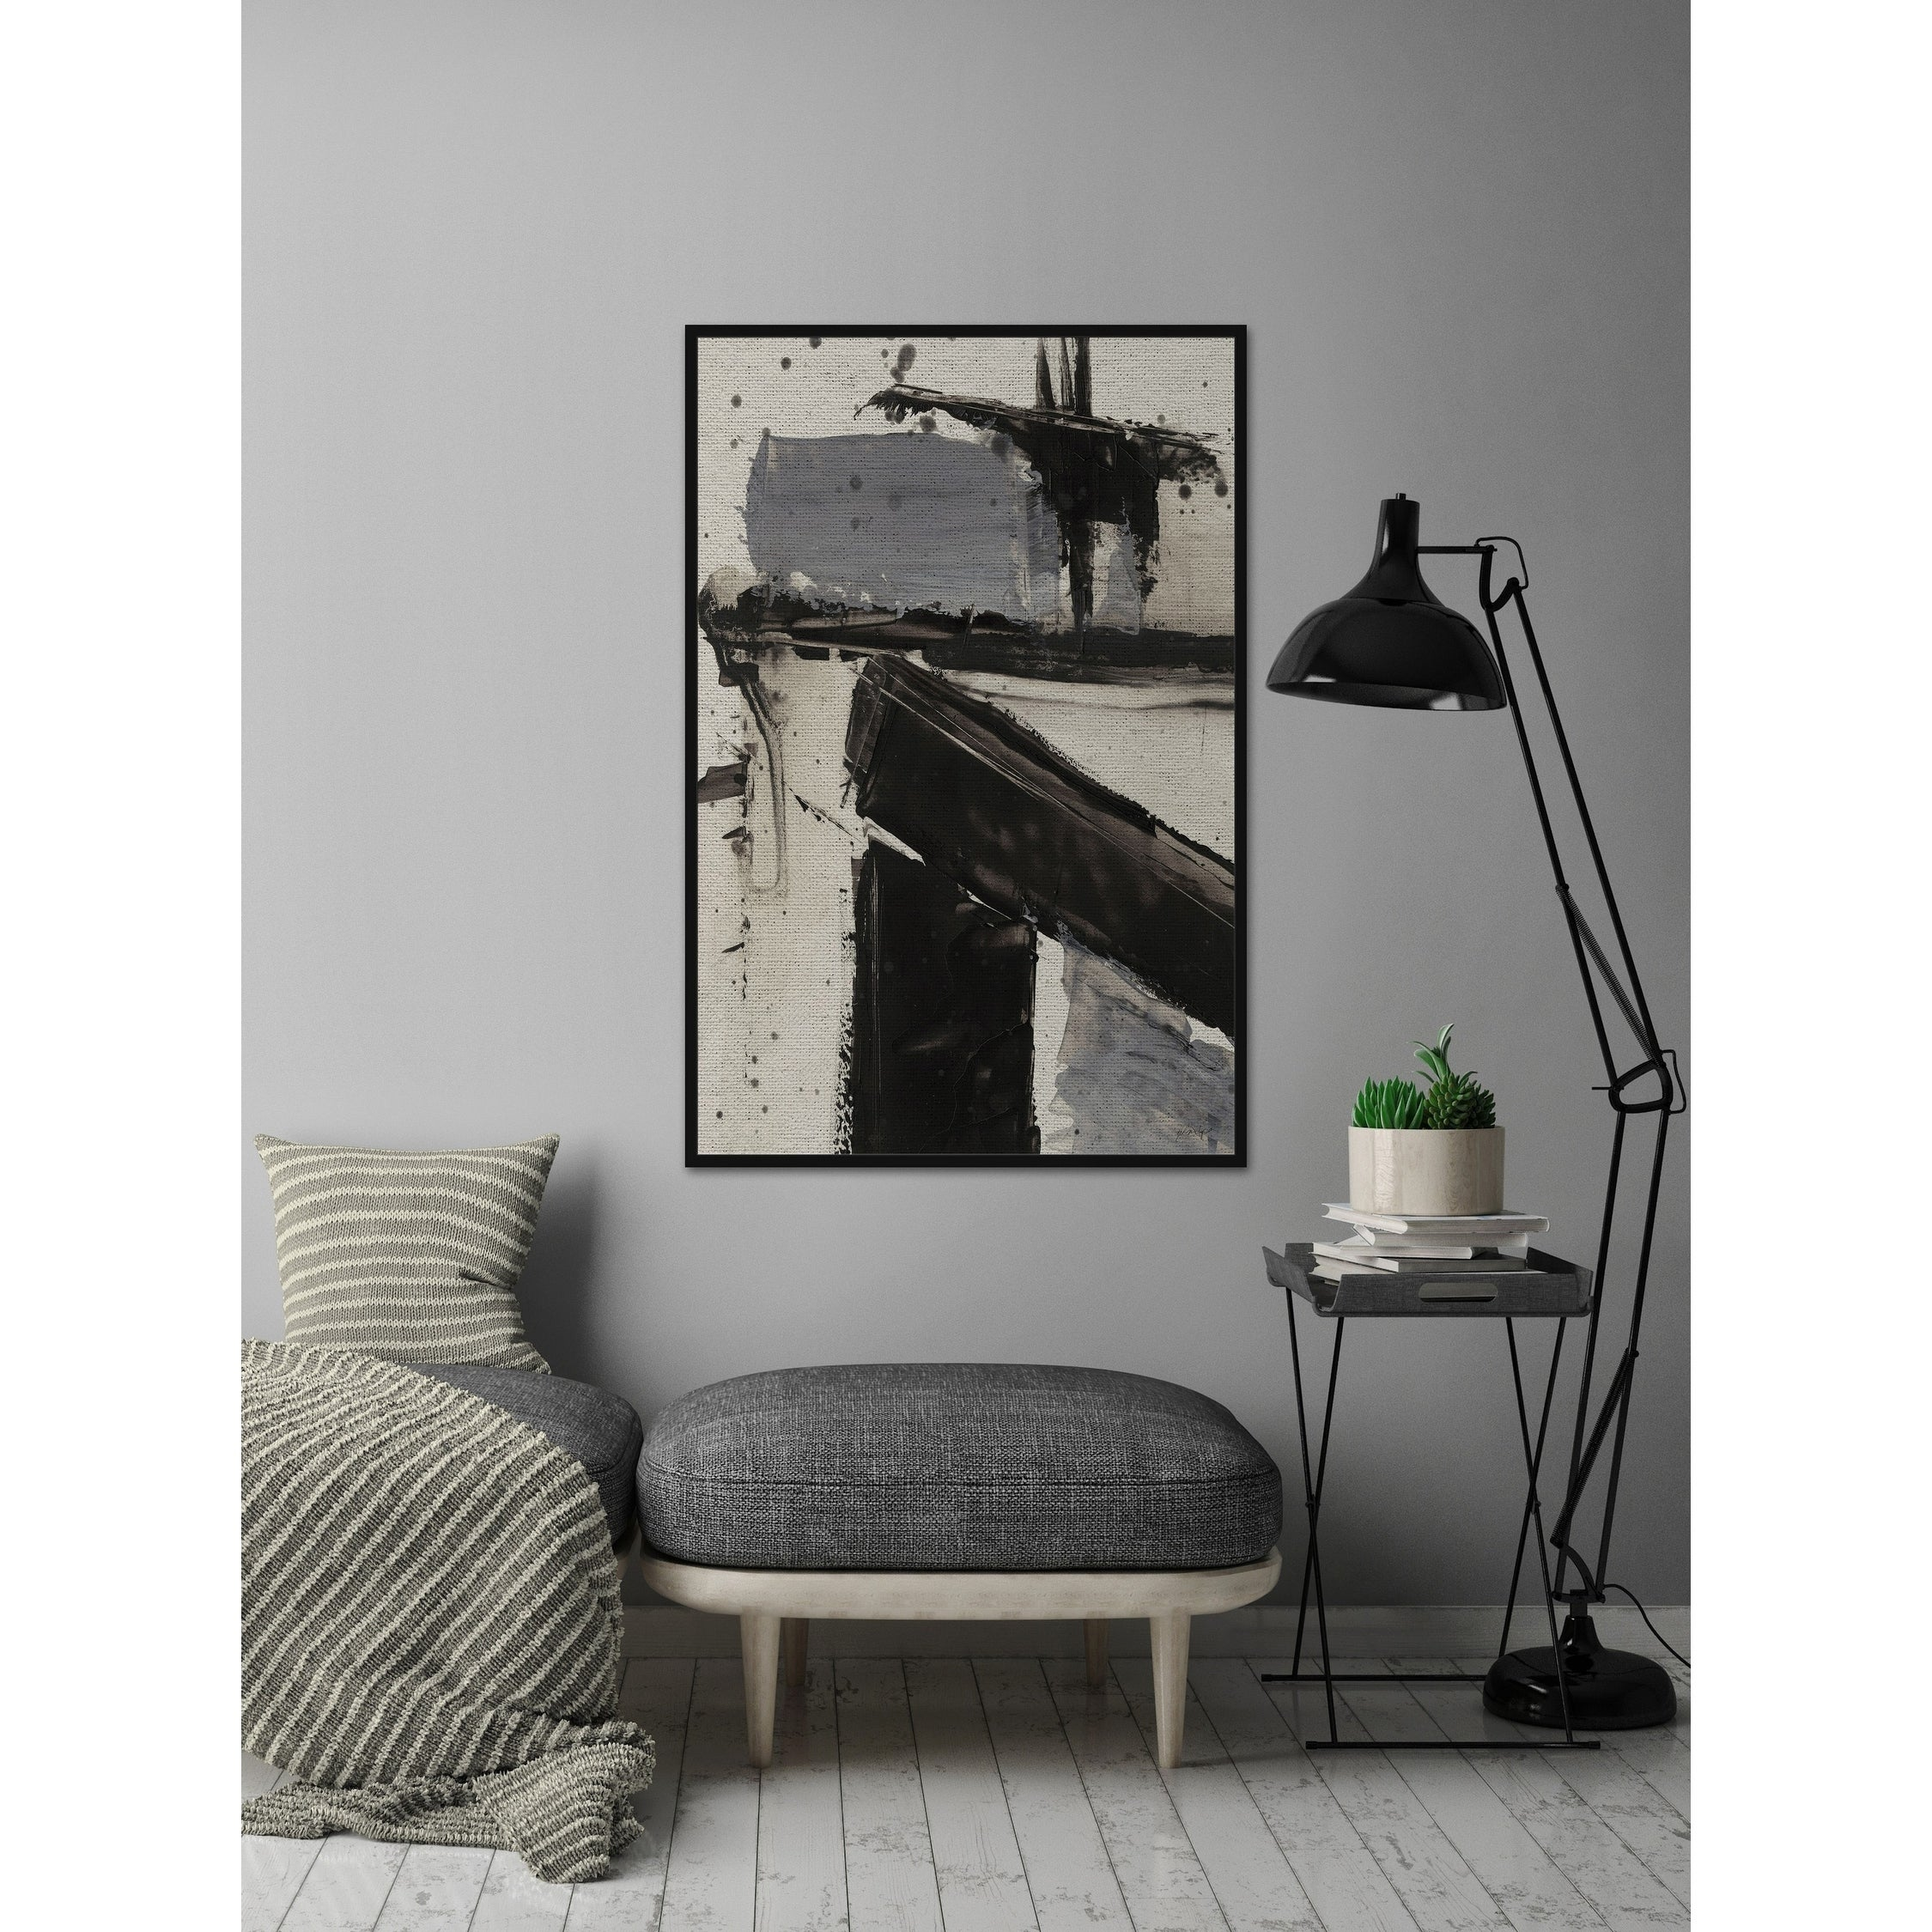 Shop U0027Demolition VIu0027 Floater Framed Painting Print On Canvas   Multi Color    Free Shipping Today   Overstock.com   24126018